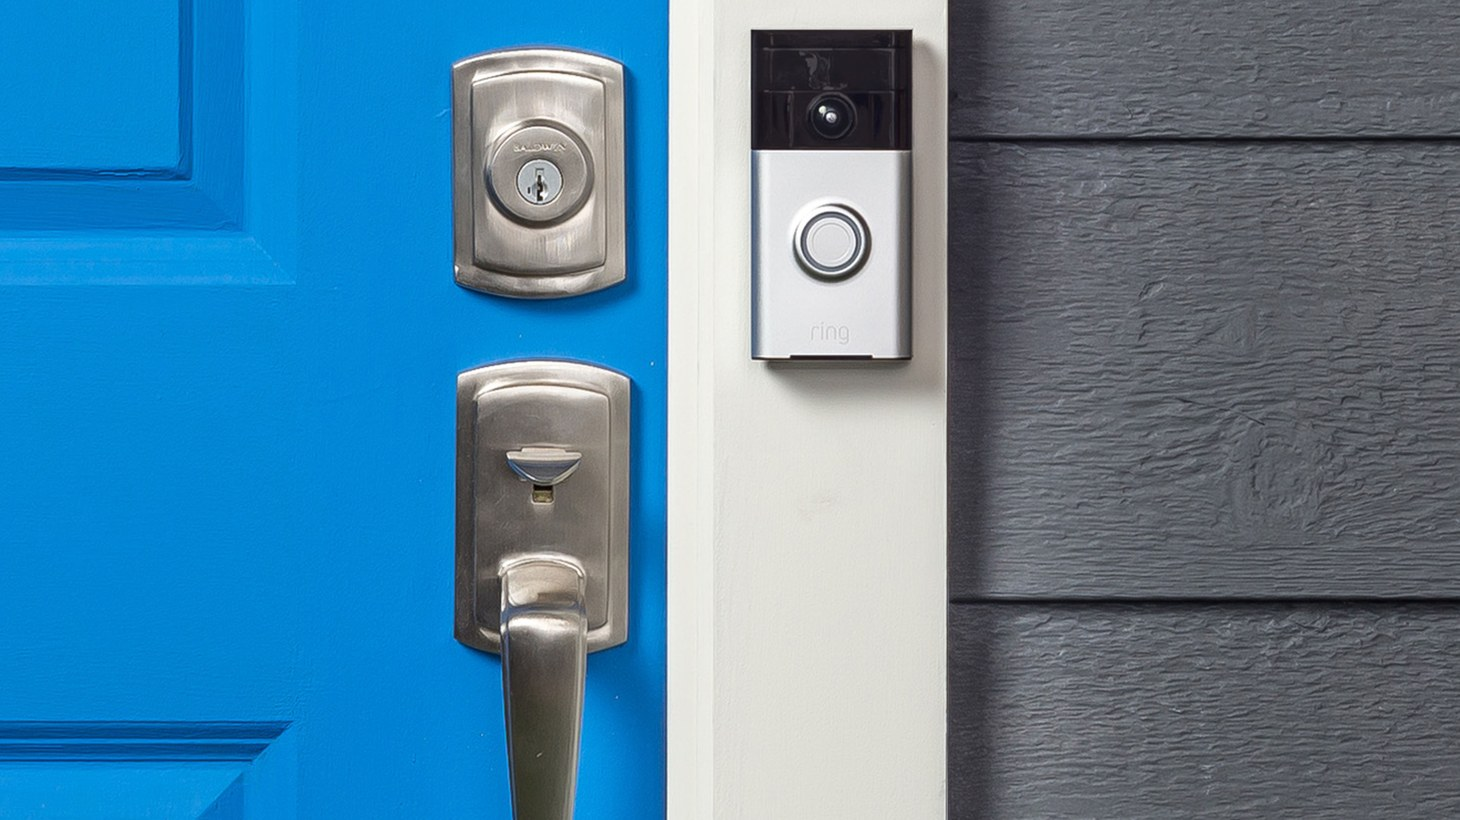 The Ring video doorbell, mounted next to the front door of a house.